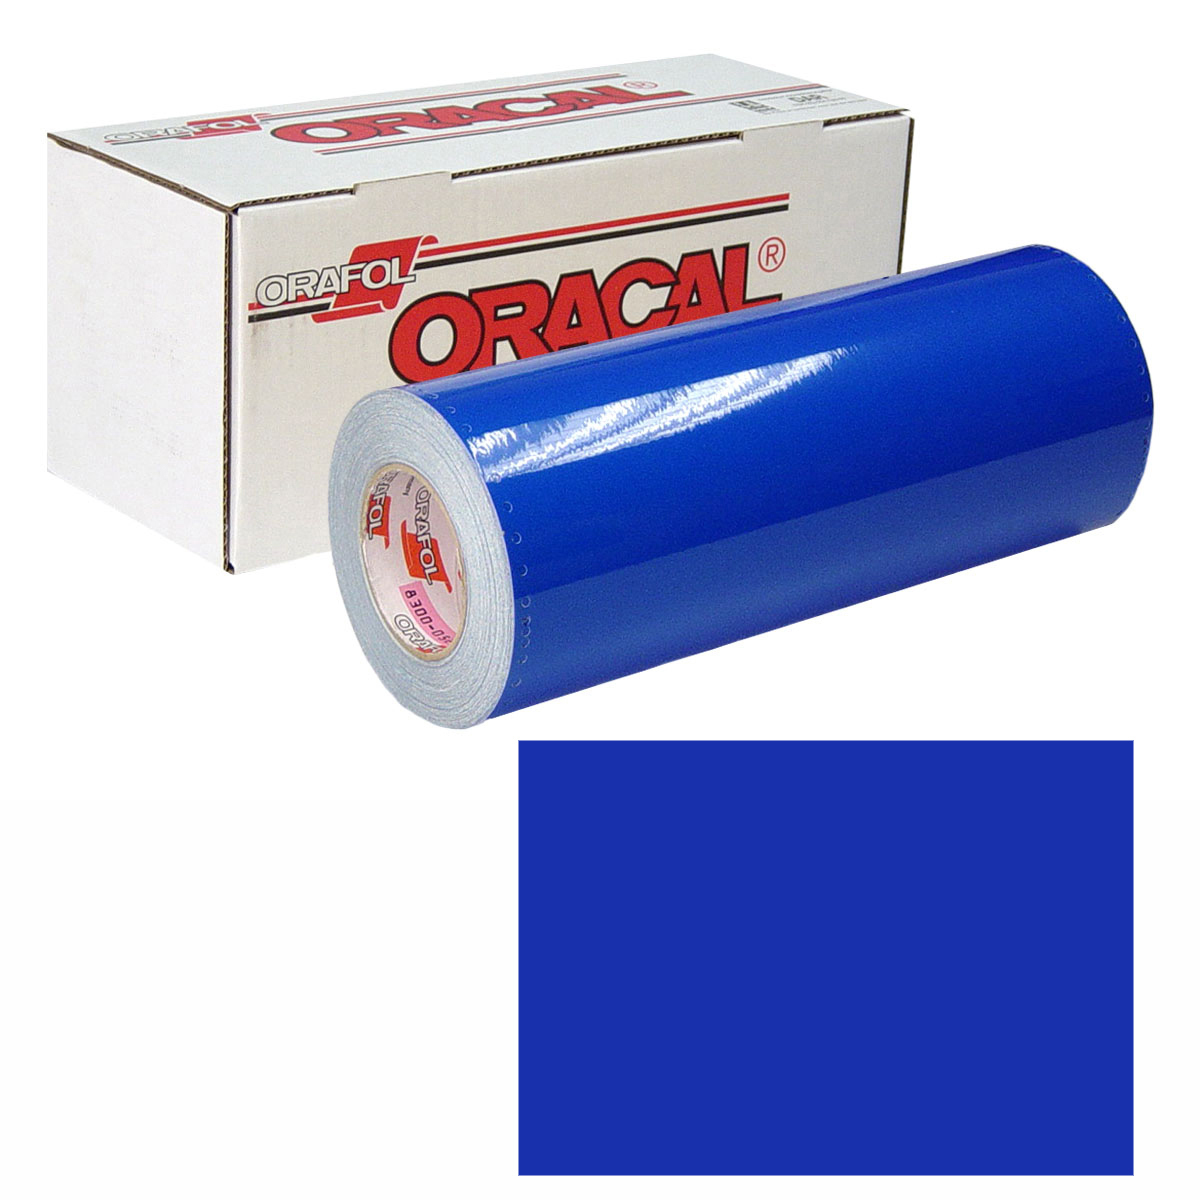 ORACAL 631 Unp 48in X 50yd 086 Brilliant Blue